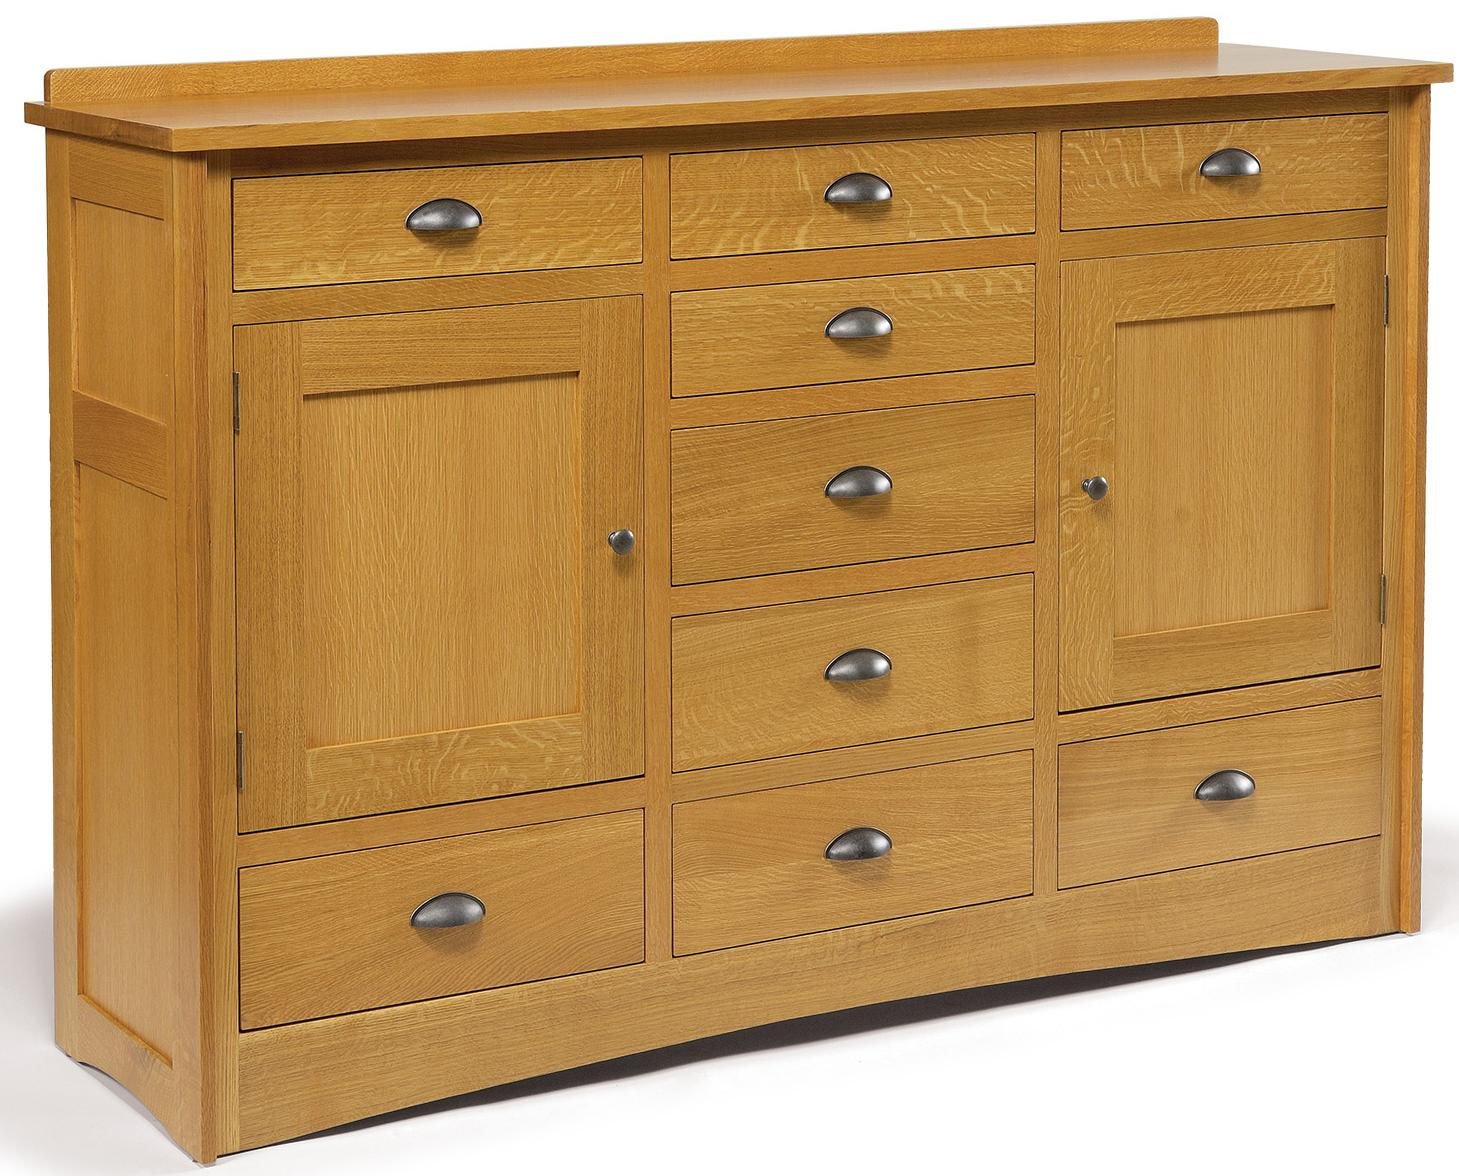 Mission Triple Dresser by Daniel's Amish at Pilgrim Furniture City